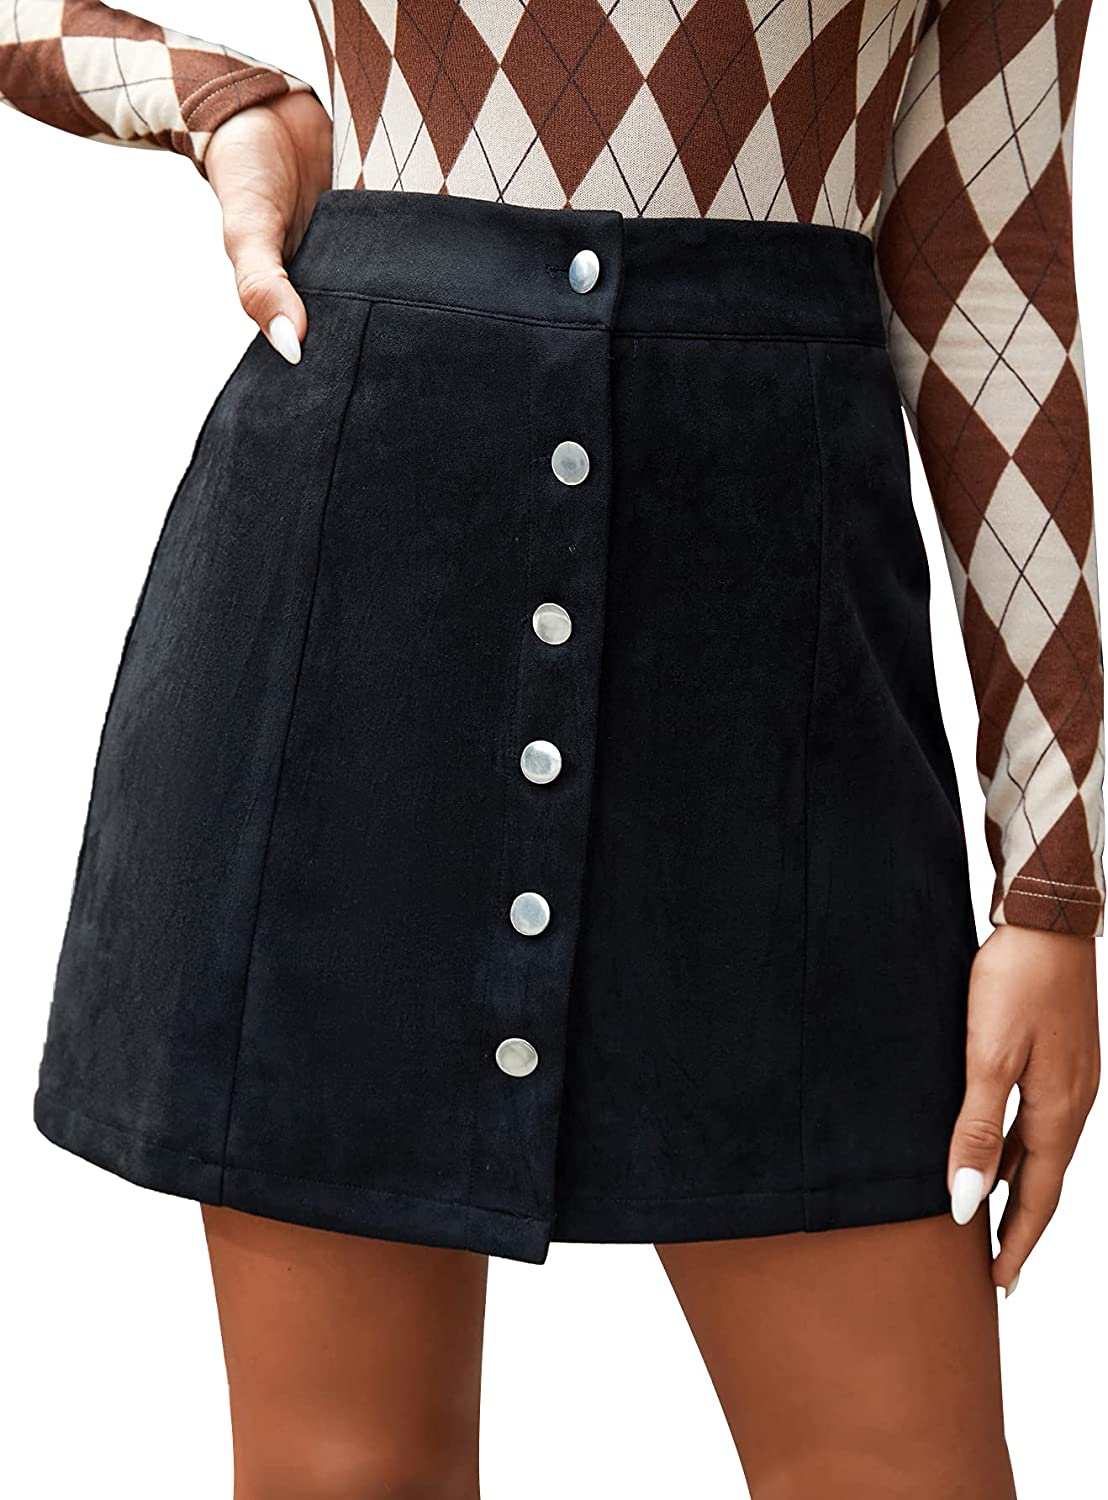 SheIn Women's Casual Button Front Solid Suede A-Line Short Skirt